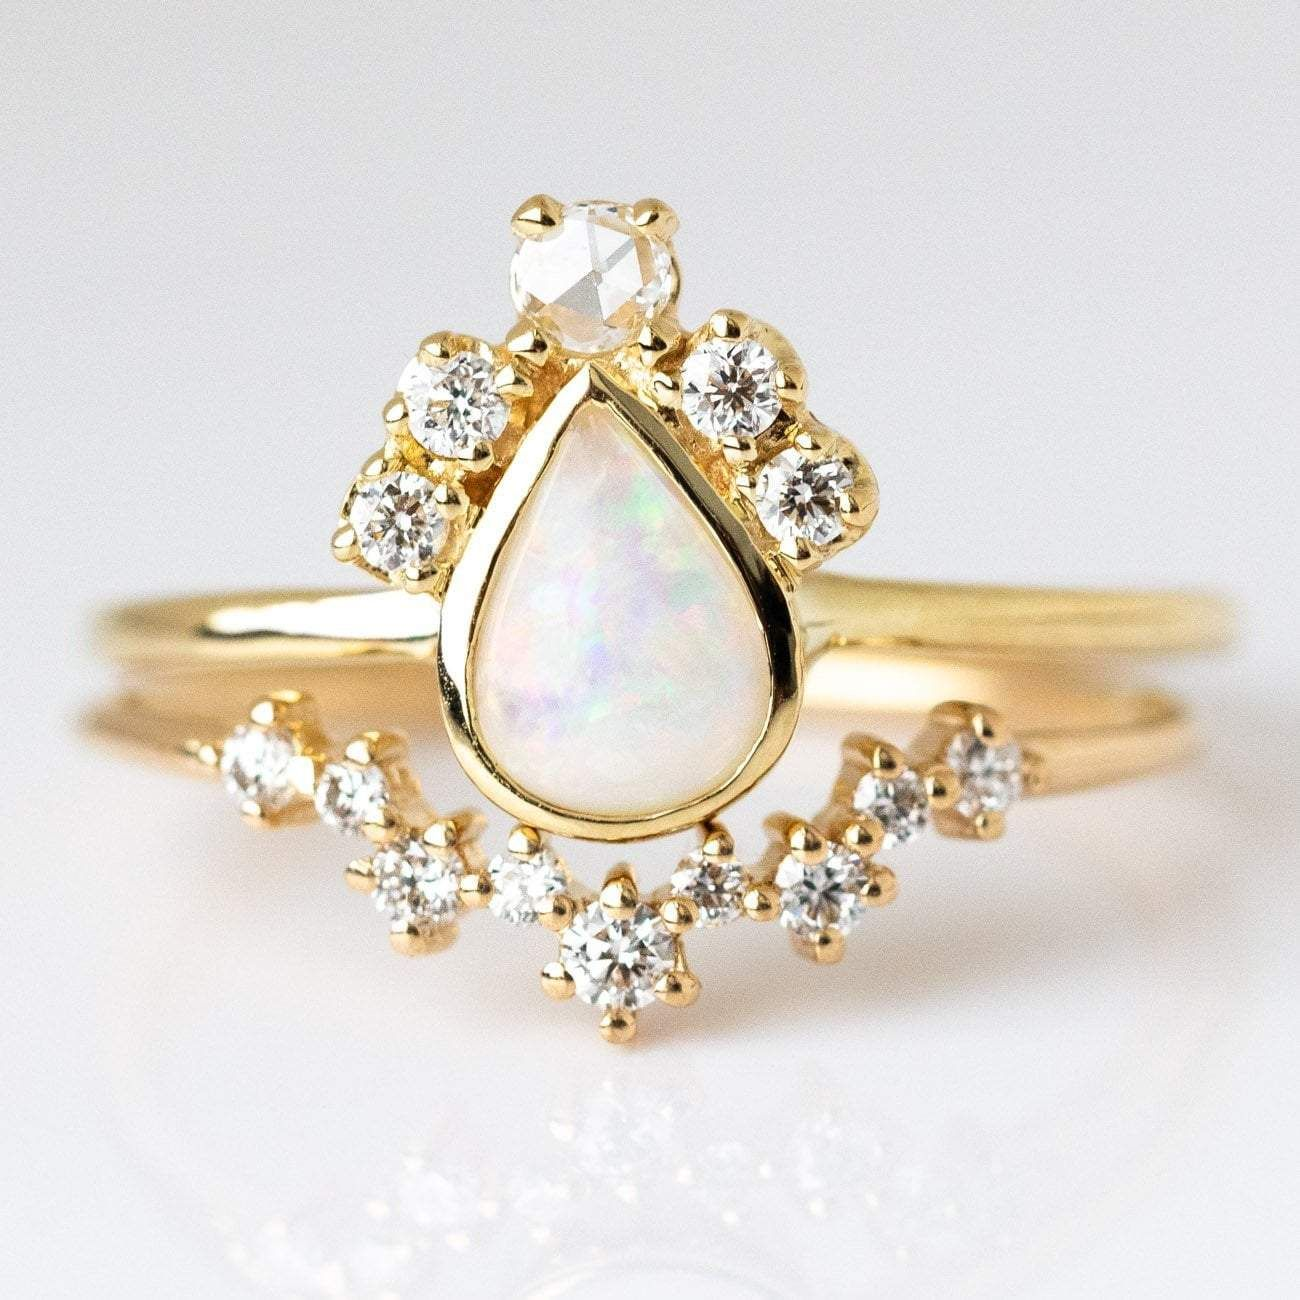 Fit For A Queen Stacking Ring Set Wedding ring bands